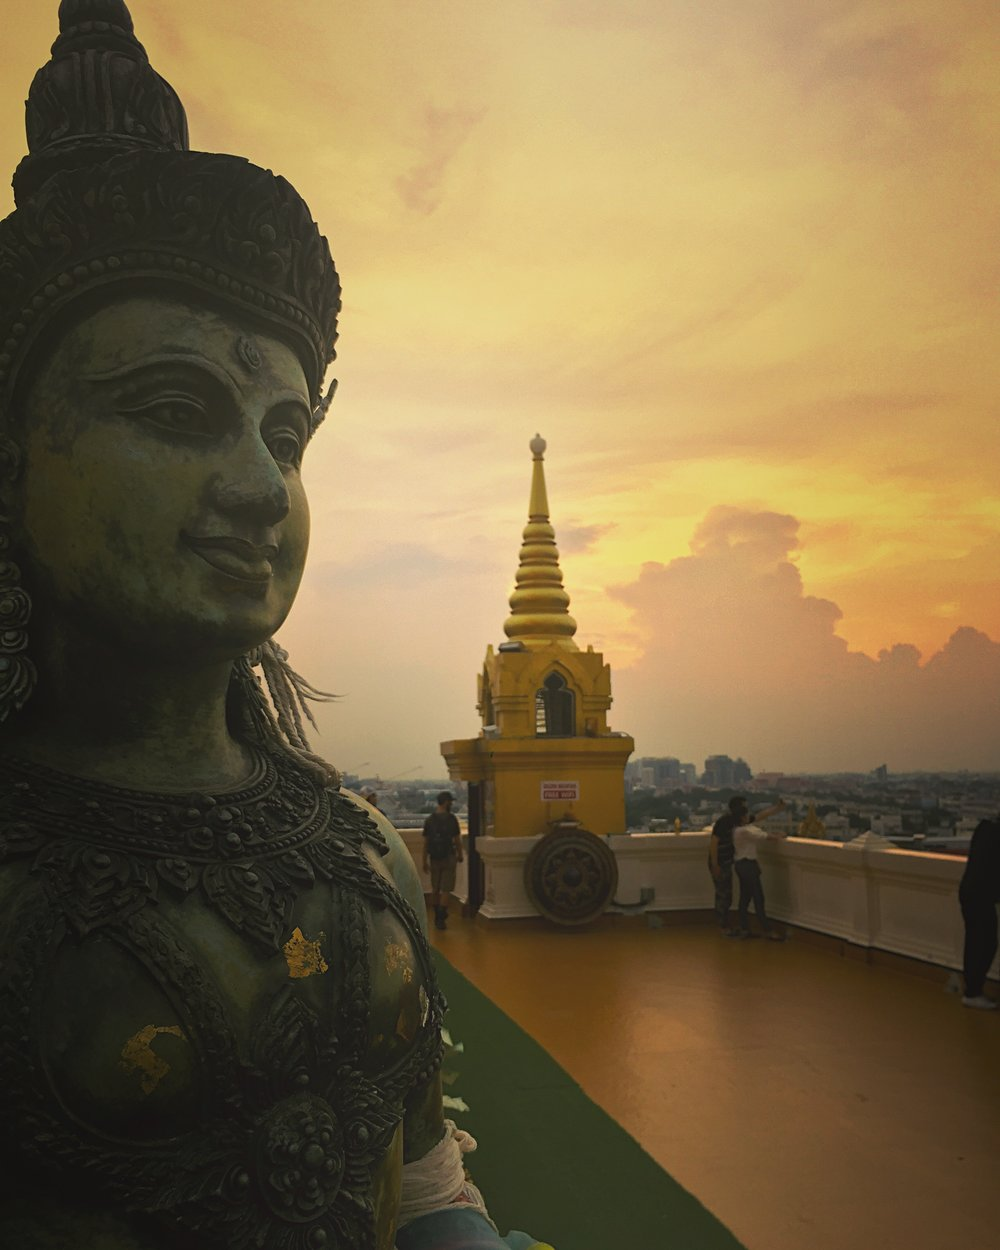 Sunset at the Golden Mount (Wat Saket)